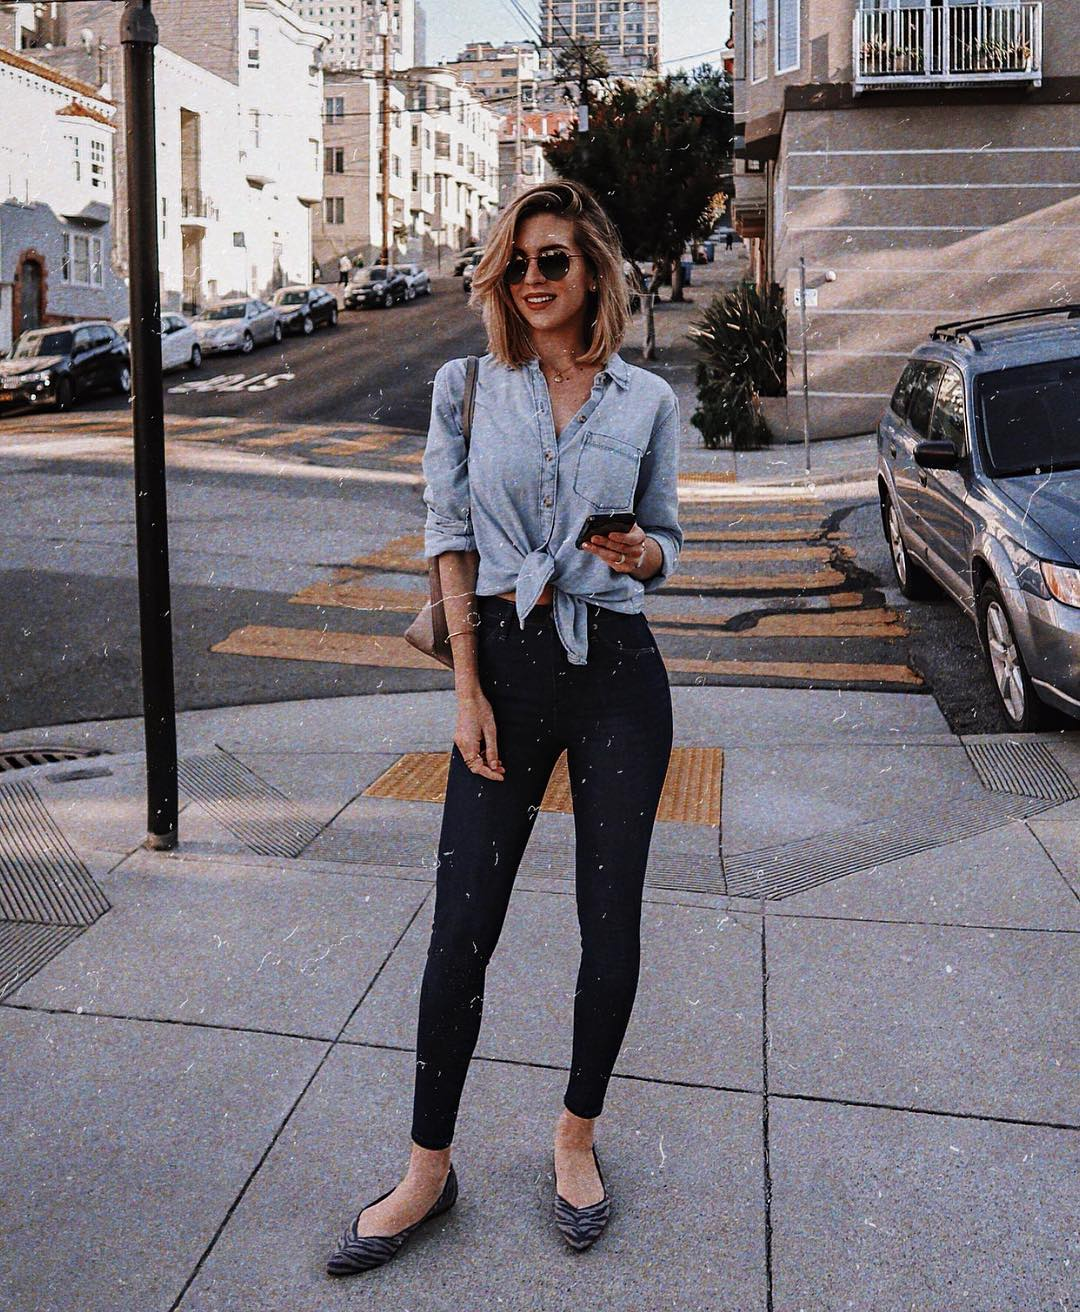 Front tie chambray shirt and black leggings for casual summer 2021